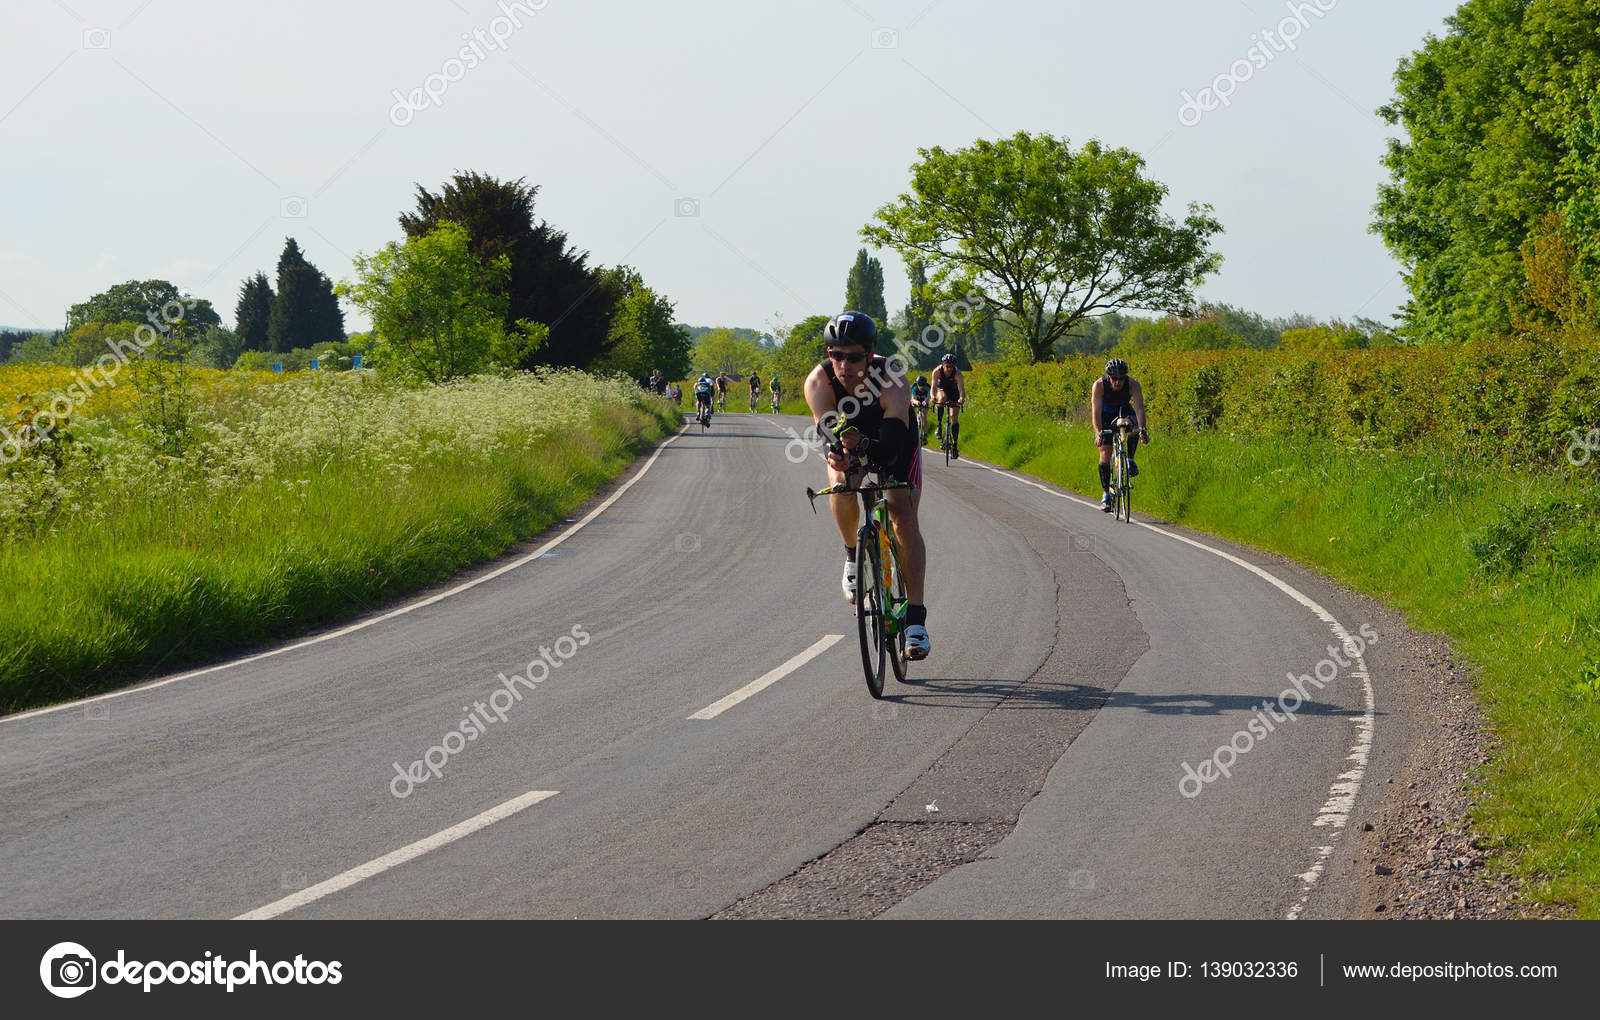 Triathletes on road cycling stage of triathlon fields and